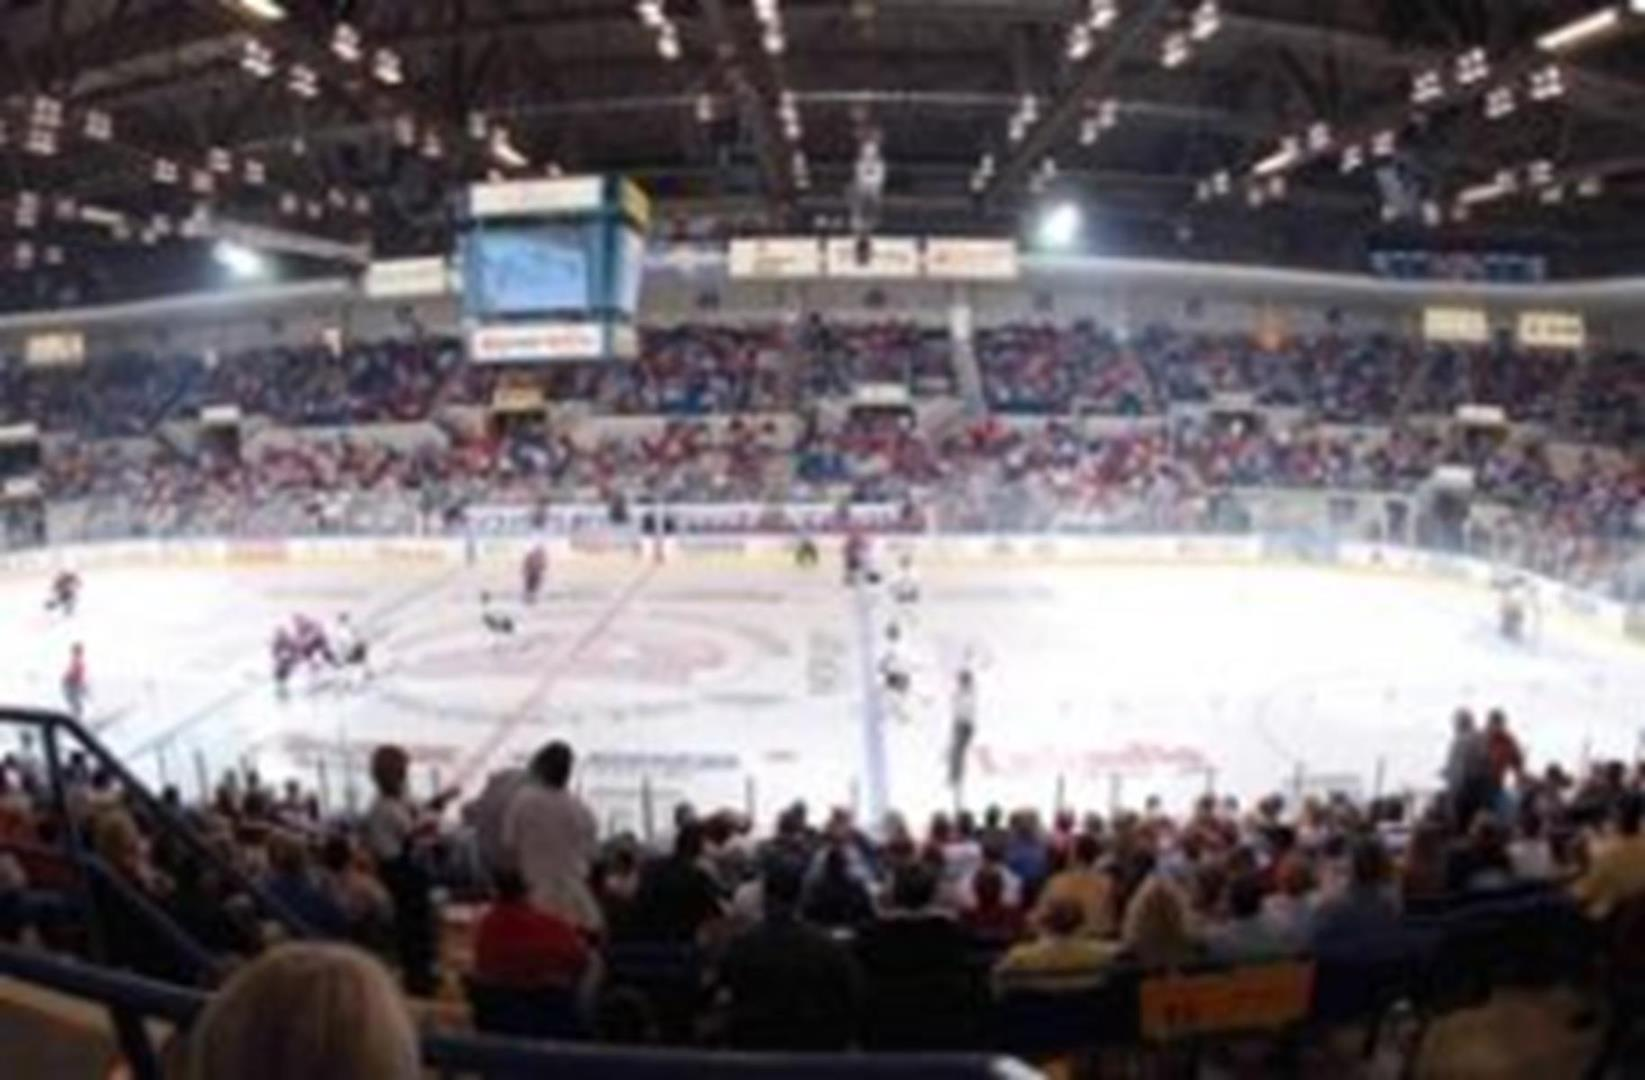 Dow Event Center - Hockey 1